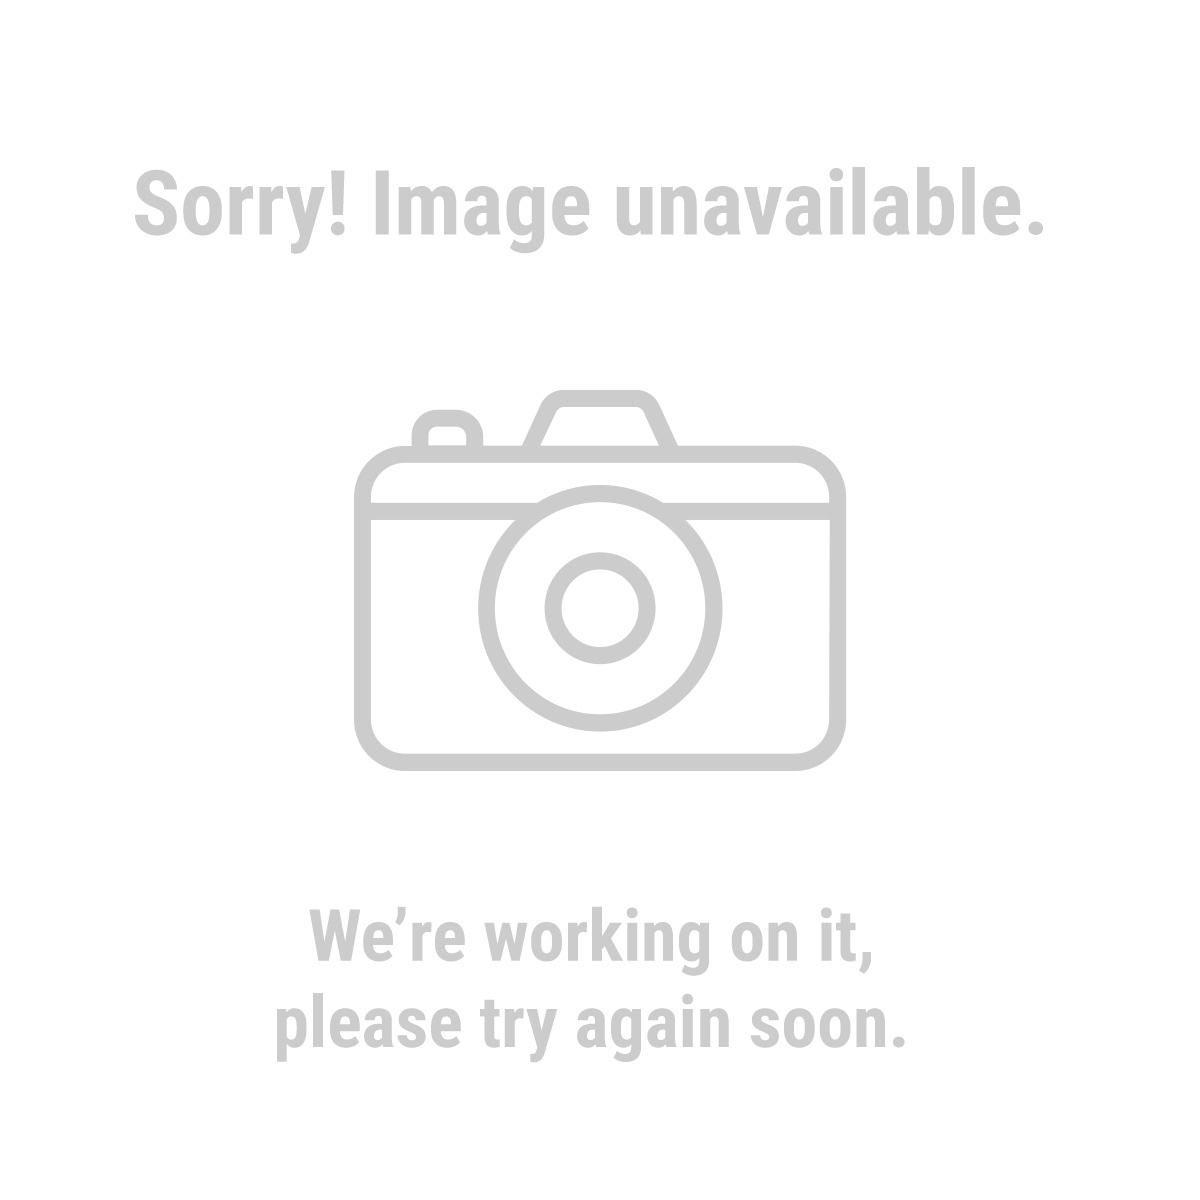 61614_zzz_alt2_500 22 hp 670cc predator motor !!!!! page 4 predator 420cc engine wiring diagram at n-0.co